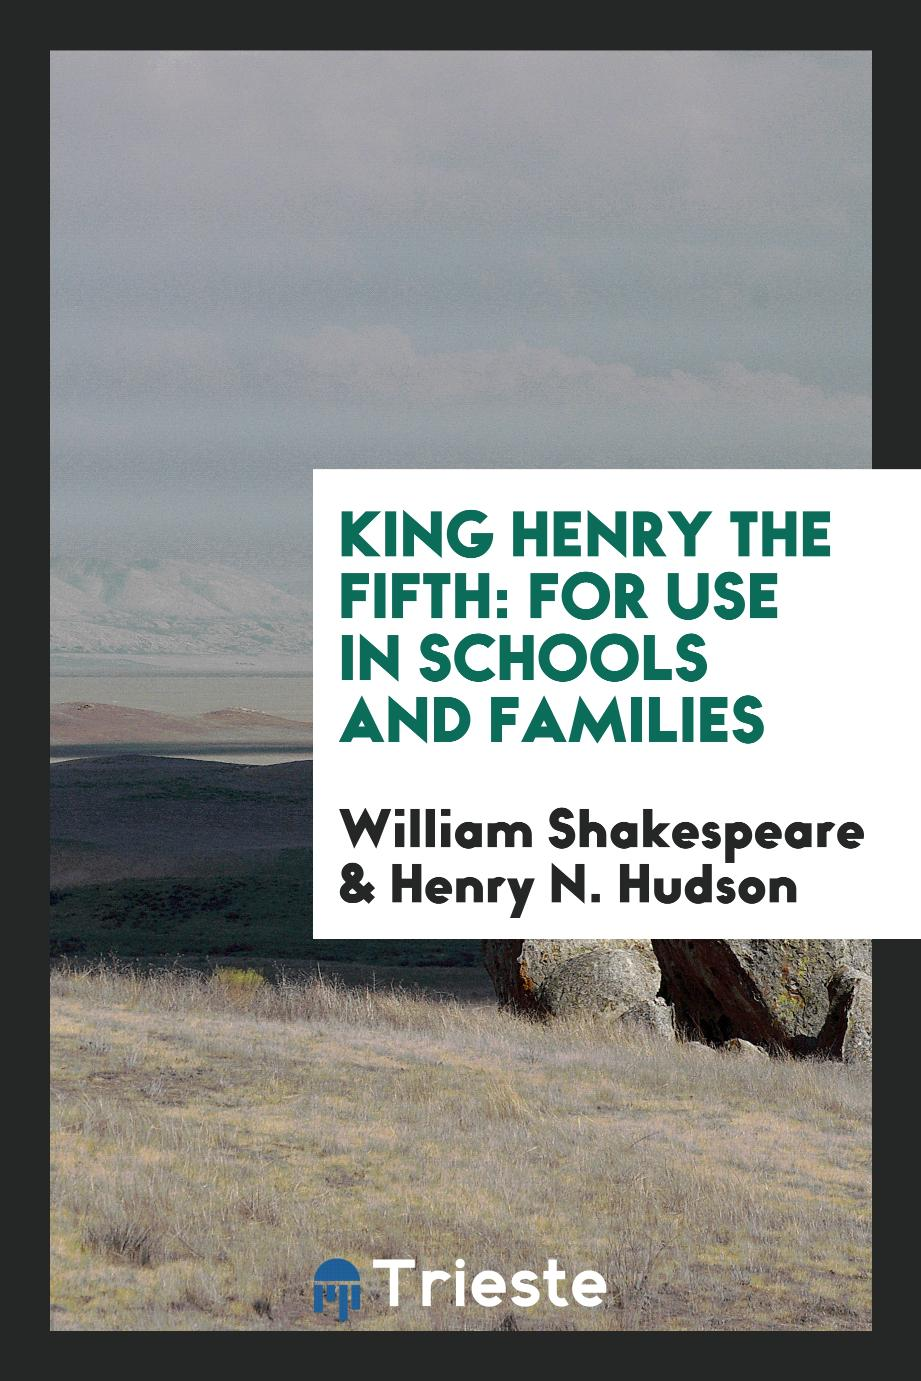 King Henry the Fifth: For Use in Schools and Families